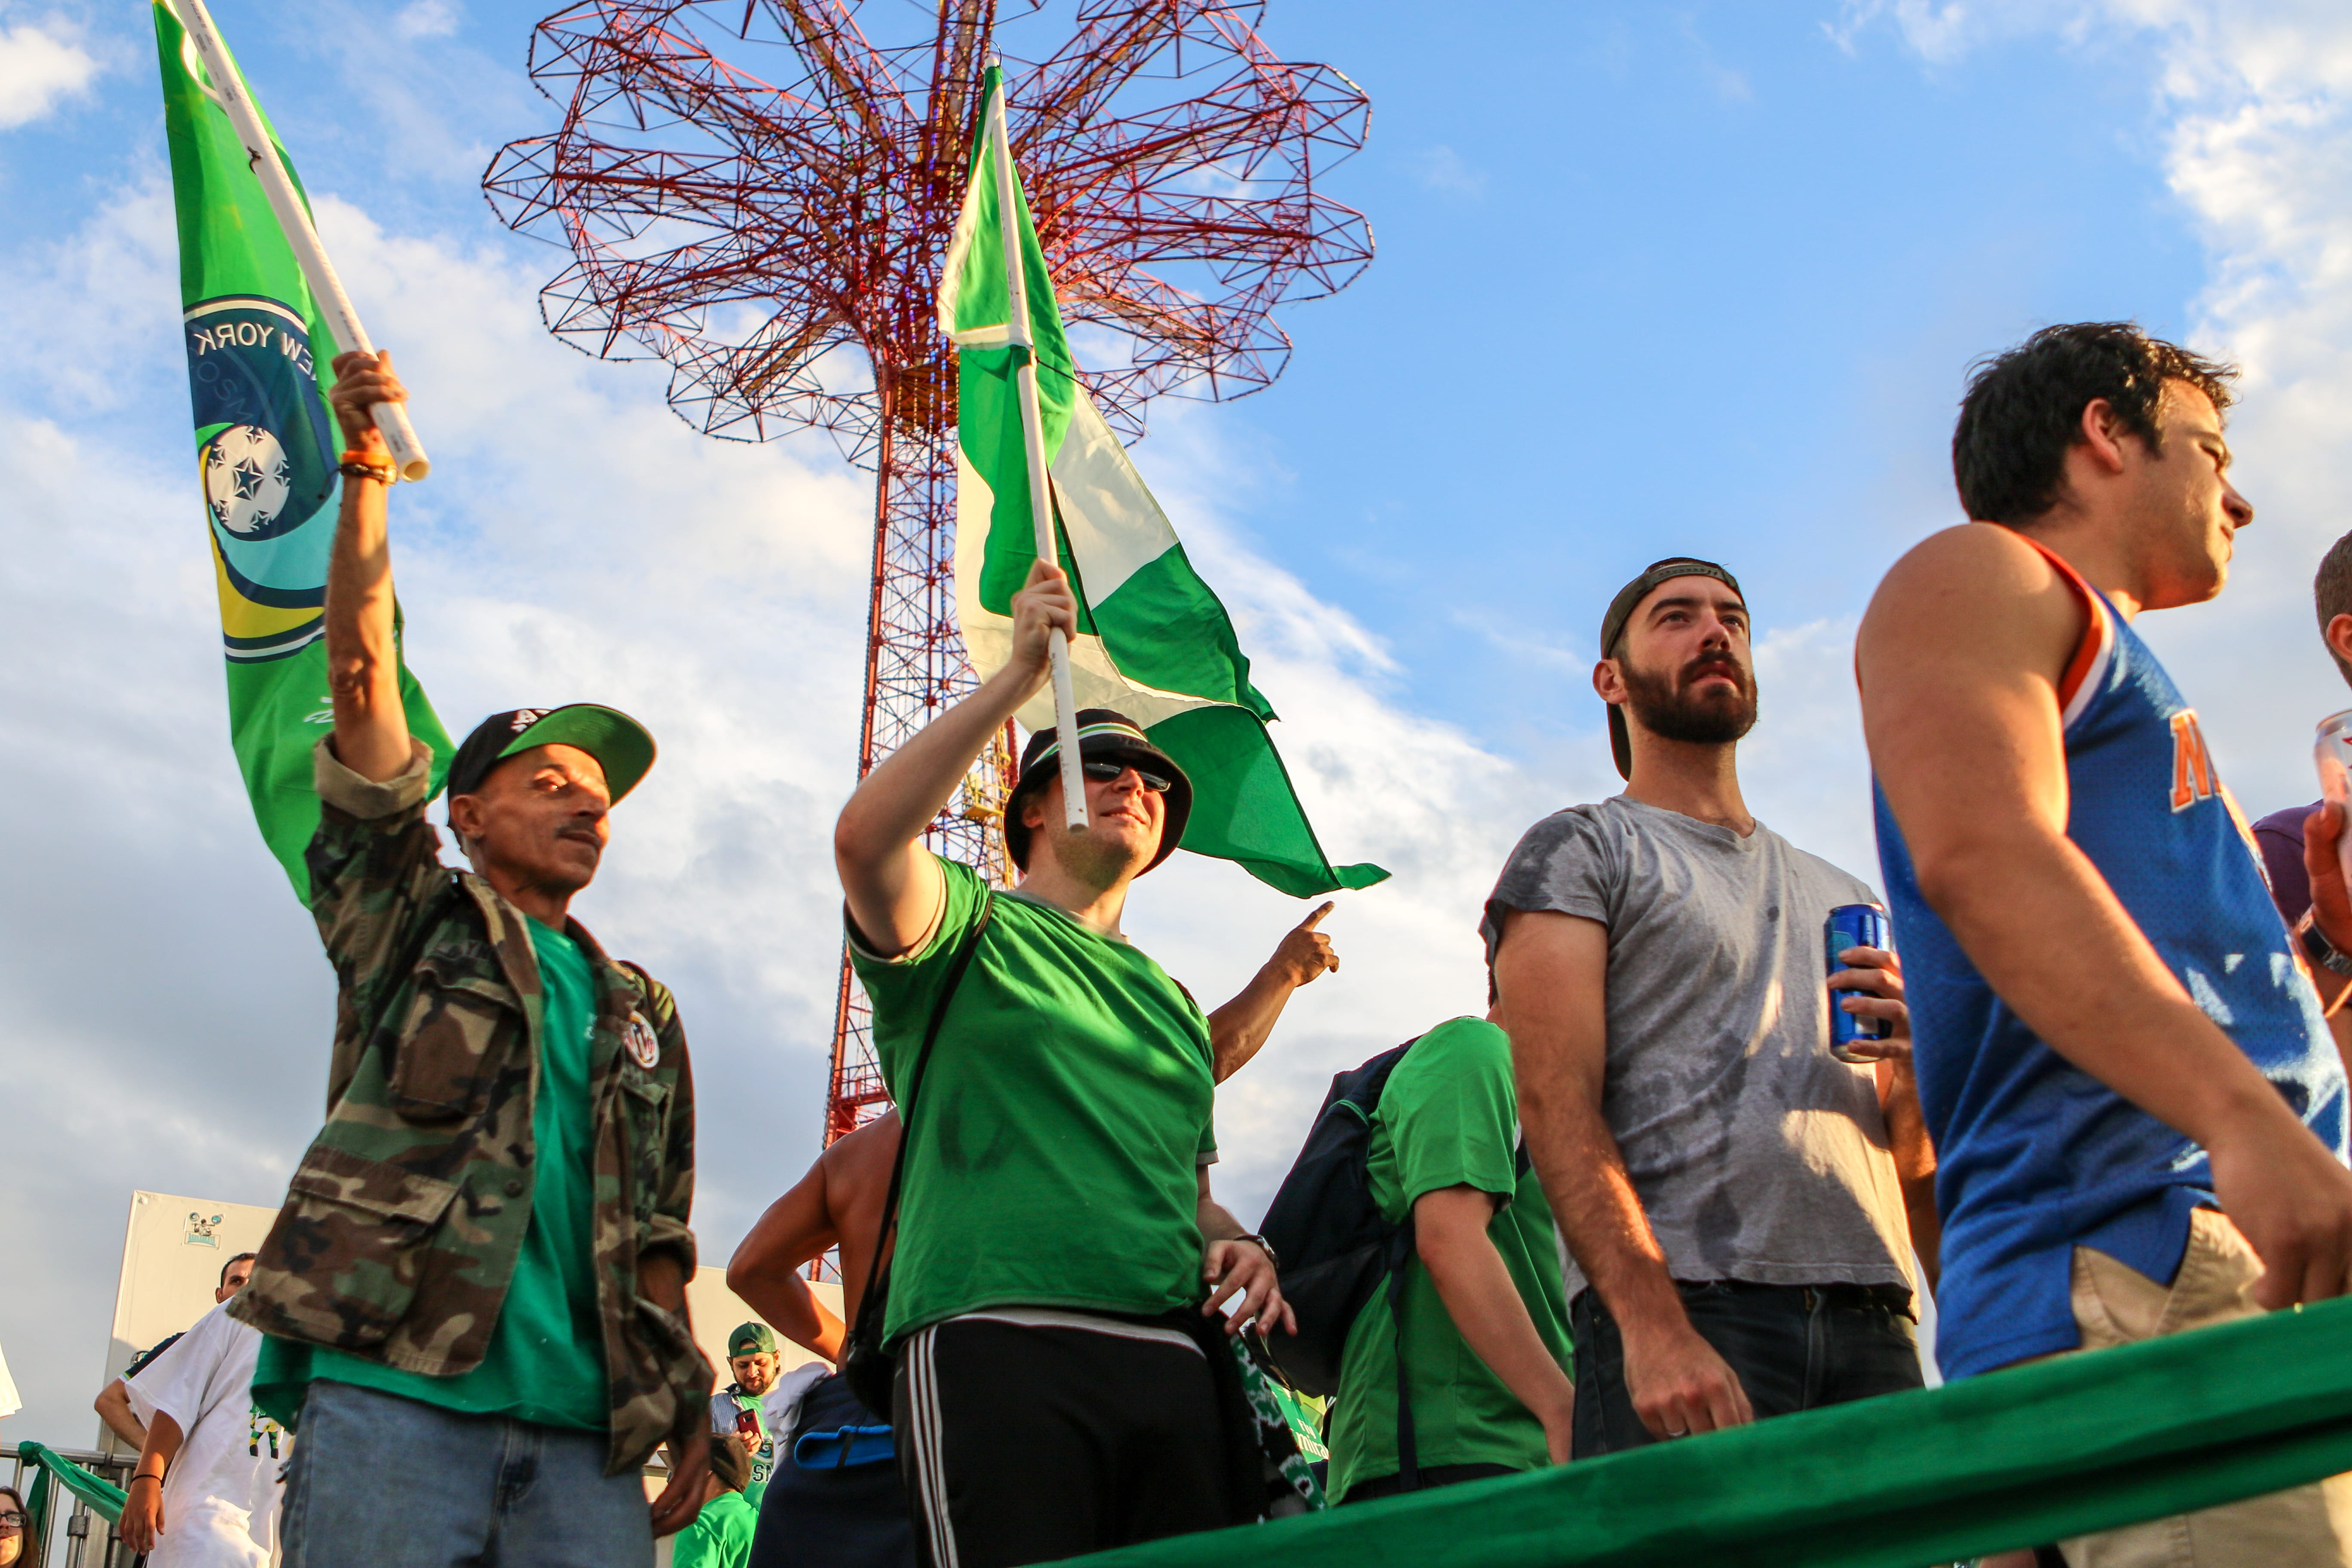 Match Day Memories: Fans Look Back on Their First New York Cosmos Games - New York CosmosMatch Day Memories: Fans Look Back on Their First New York Cosmos Games - 웹